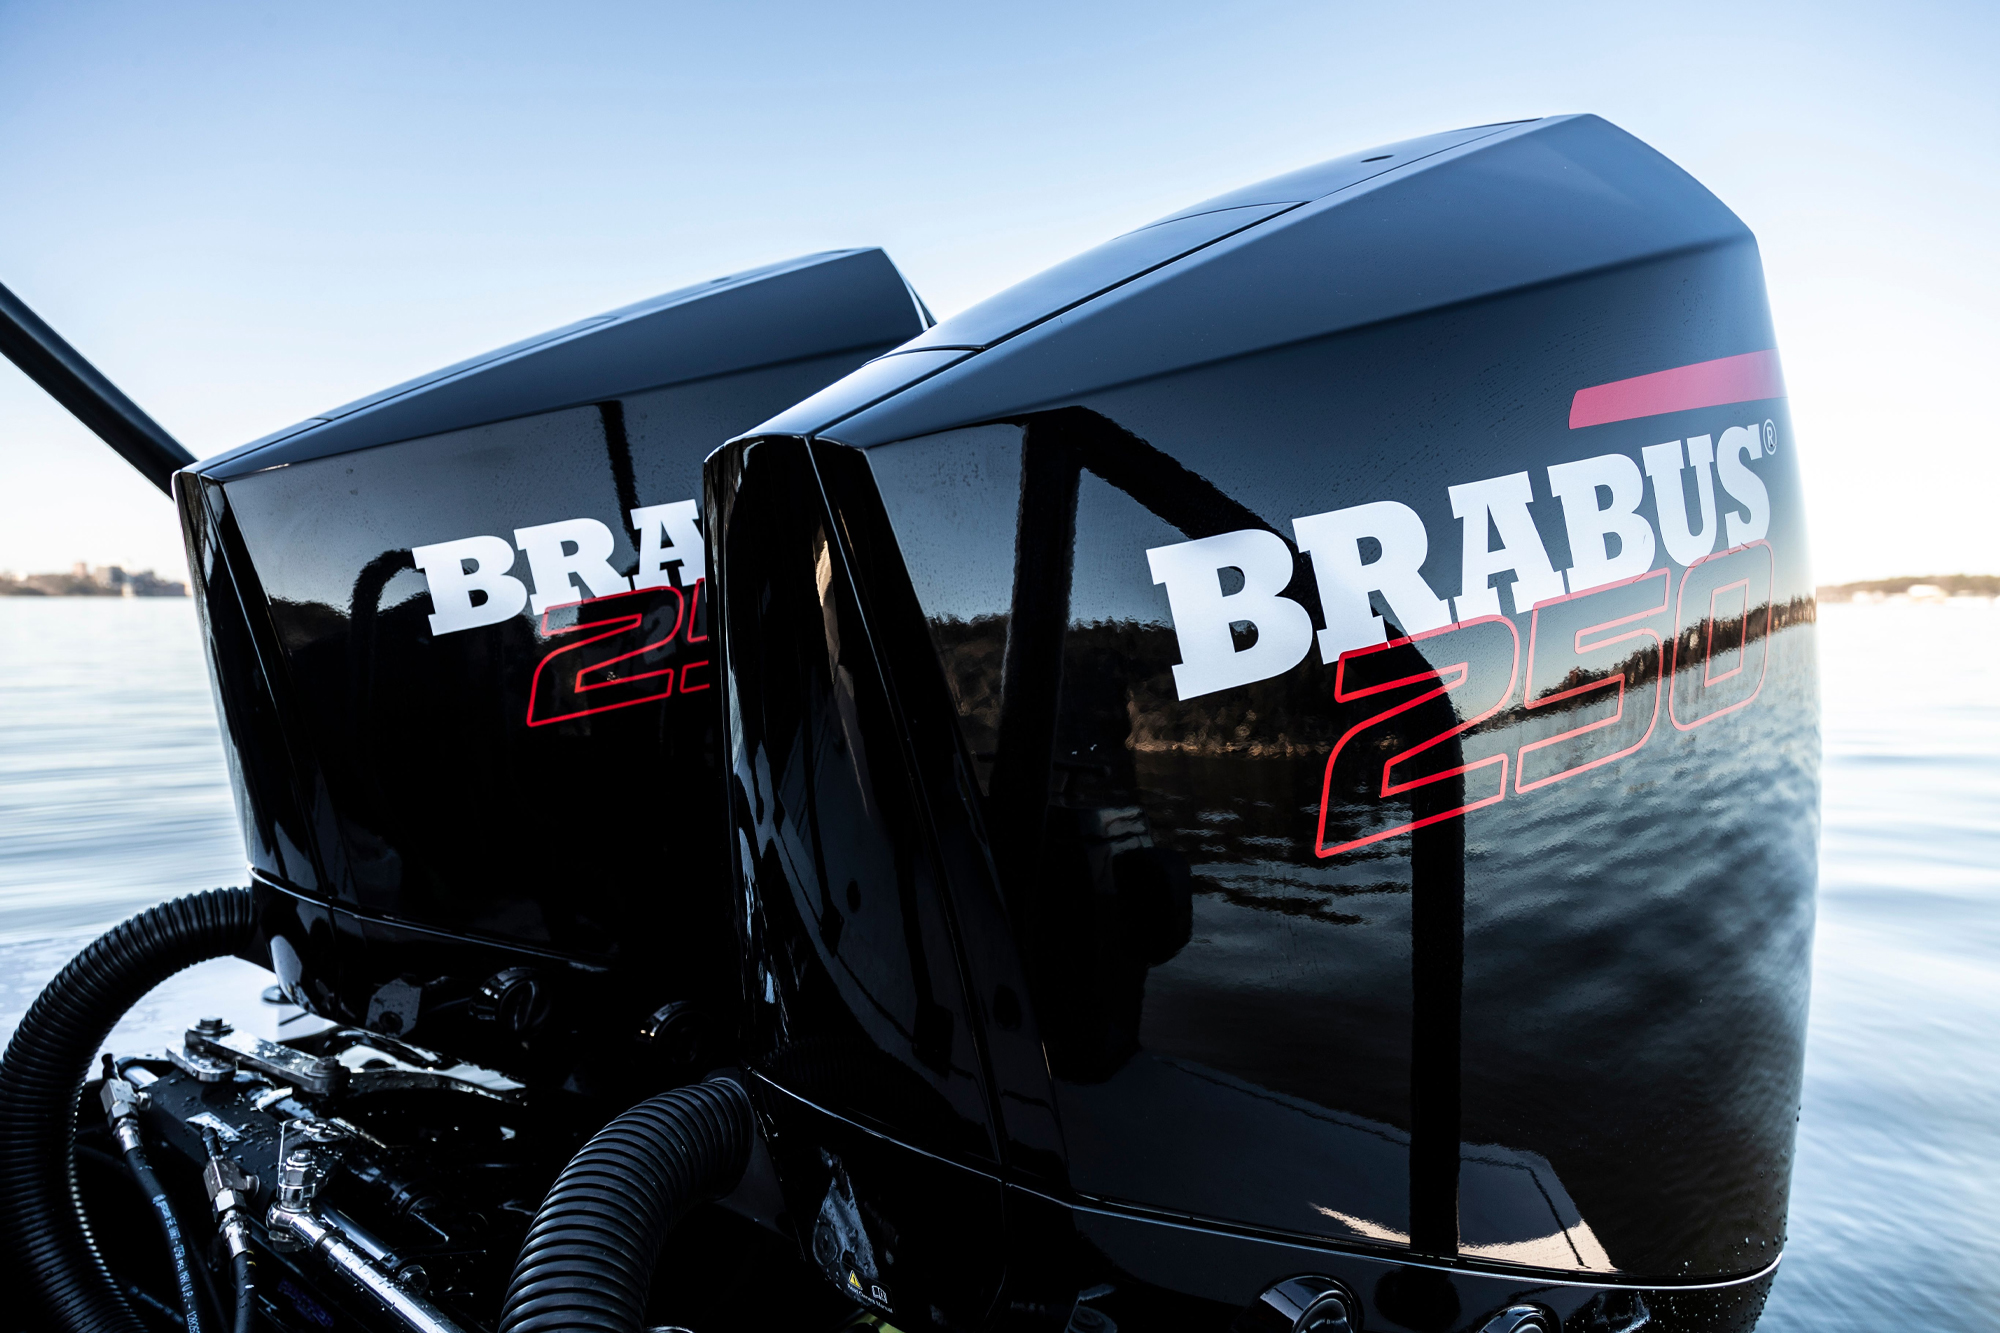 Brabus Shadow 500 Limited Edition